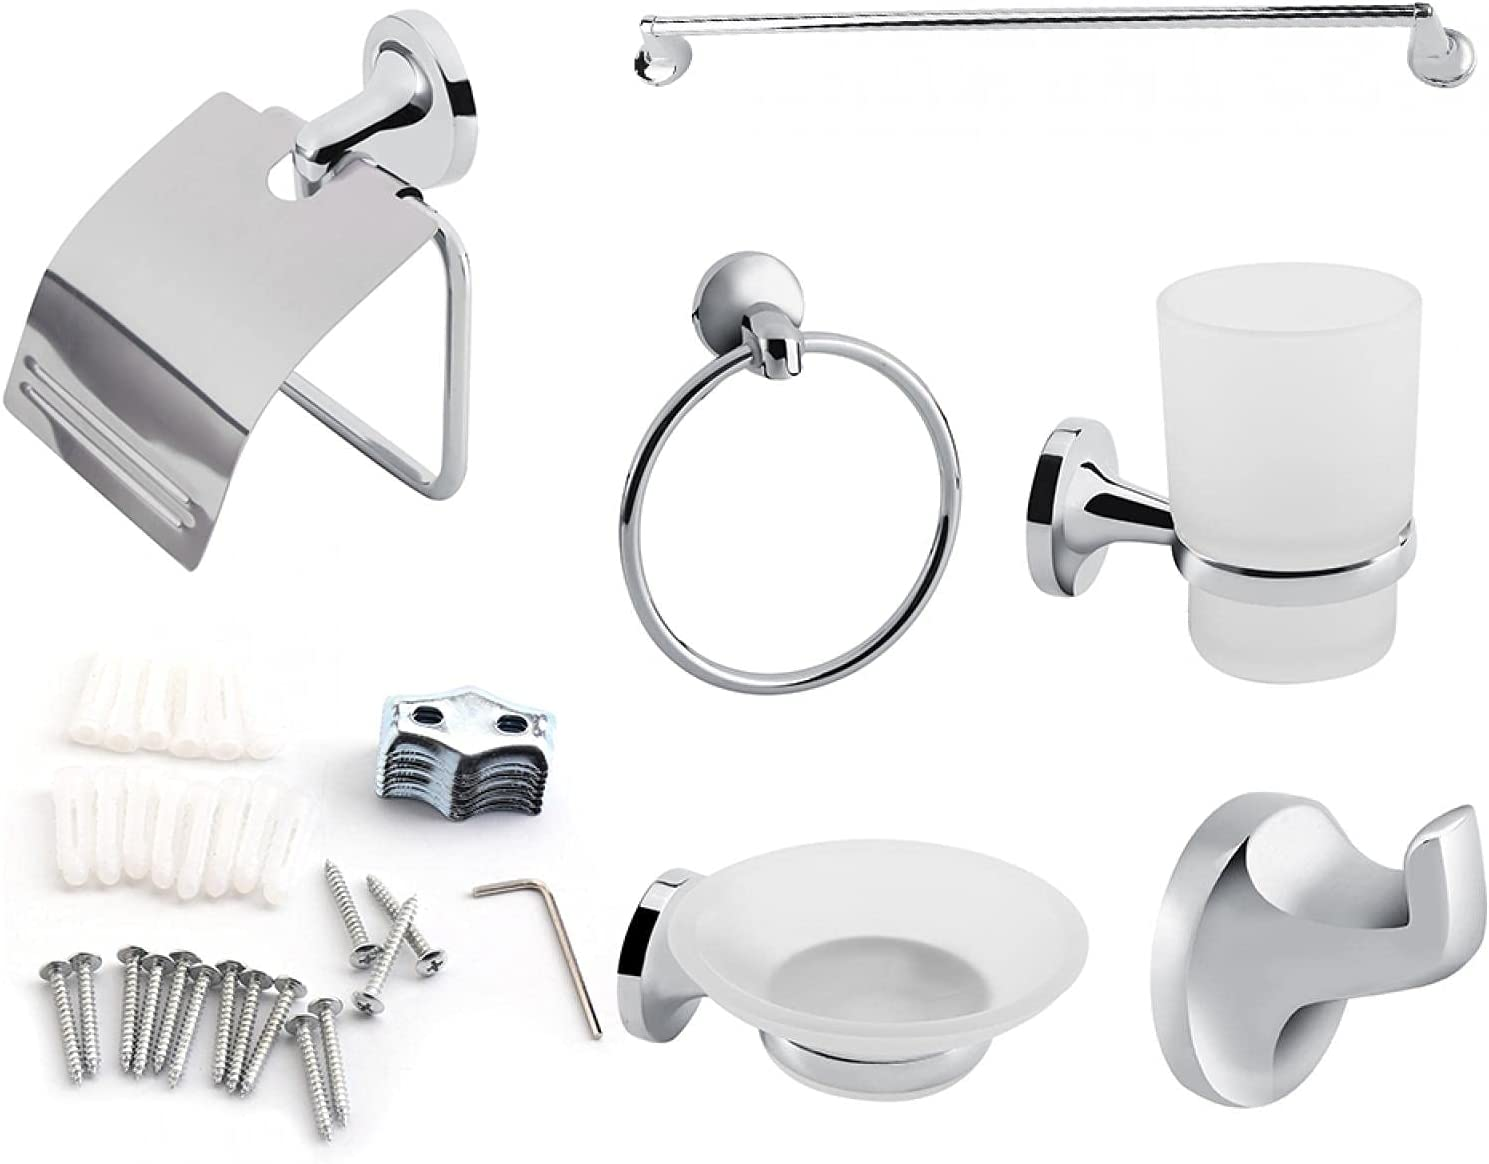 Bathroom 70% OFF Outlet Tool 6pcs Wall Mount Toilet Super beauty product restock quality top Towe Accessory Set